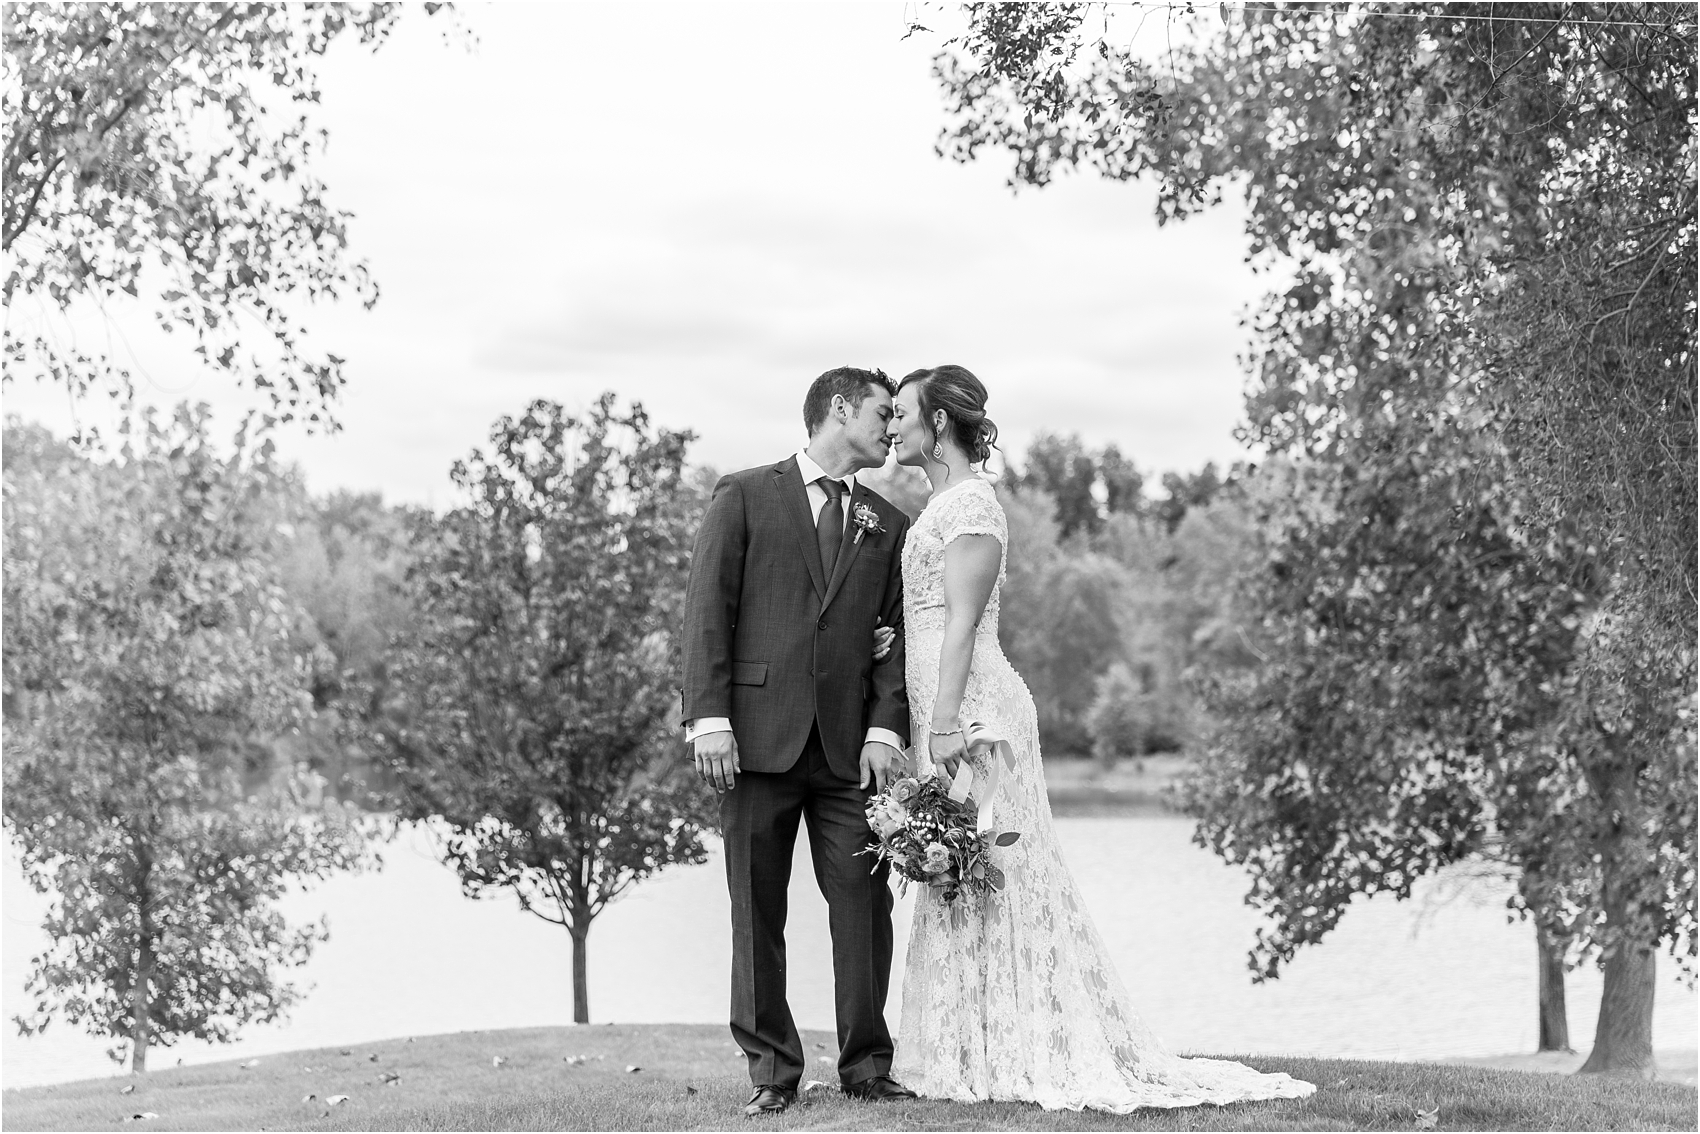 romantic-intimate-backyard-wedding-photos-at-private-estate-in-ann-arbor-mi-by-courtney-carolyn-photography_0043.jpg